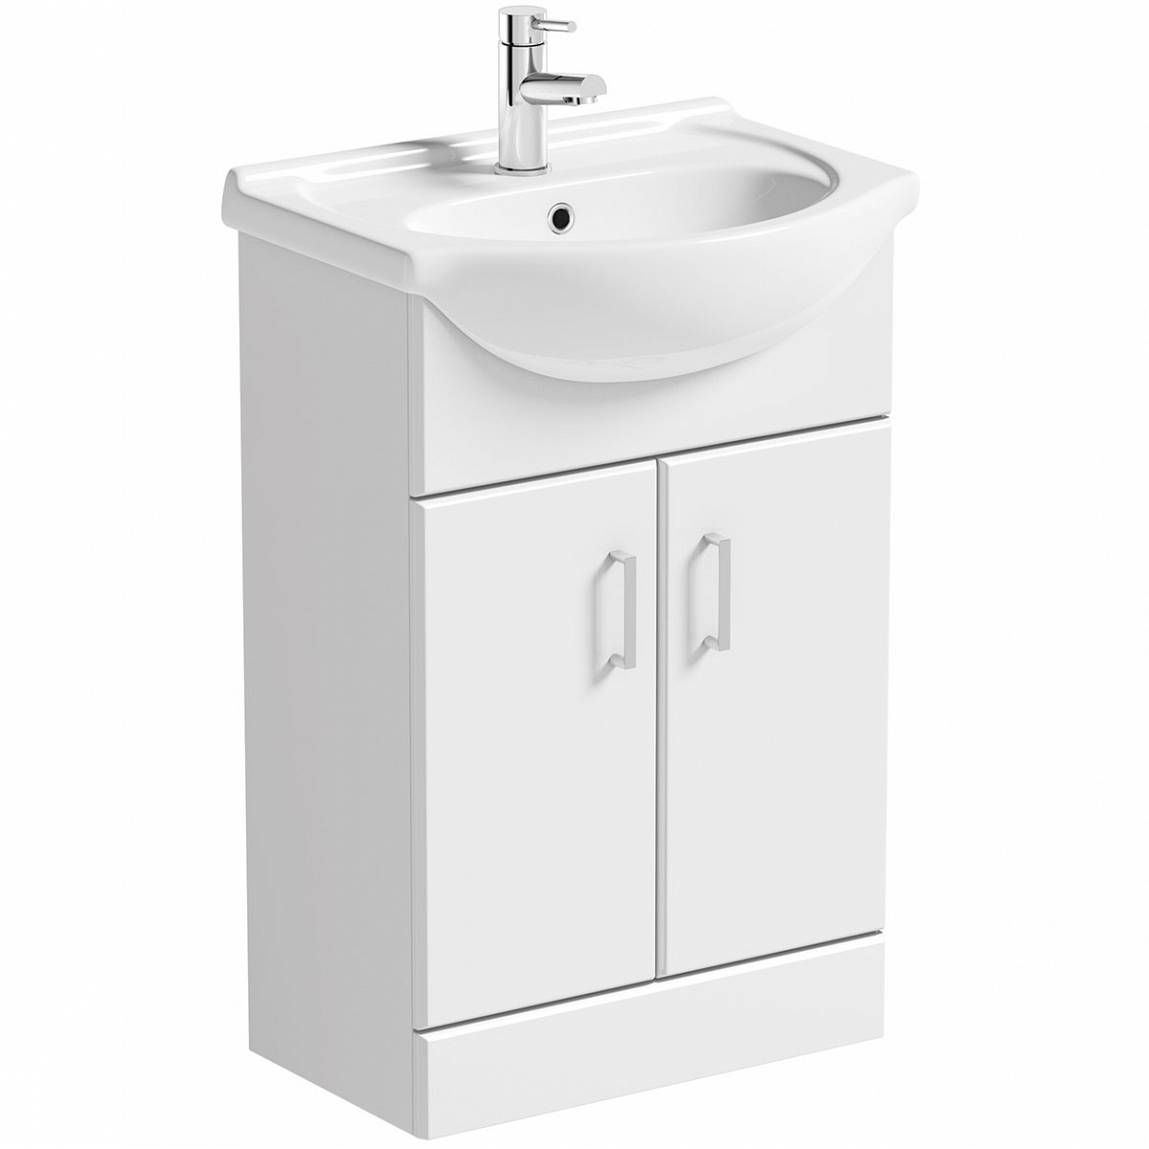 Cozy Sienna white vanity unit with basin 550mm vanity unit with basin